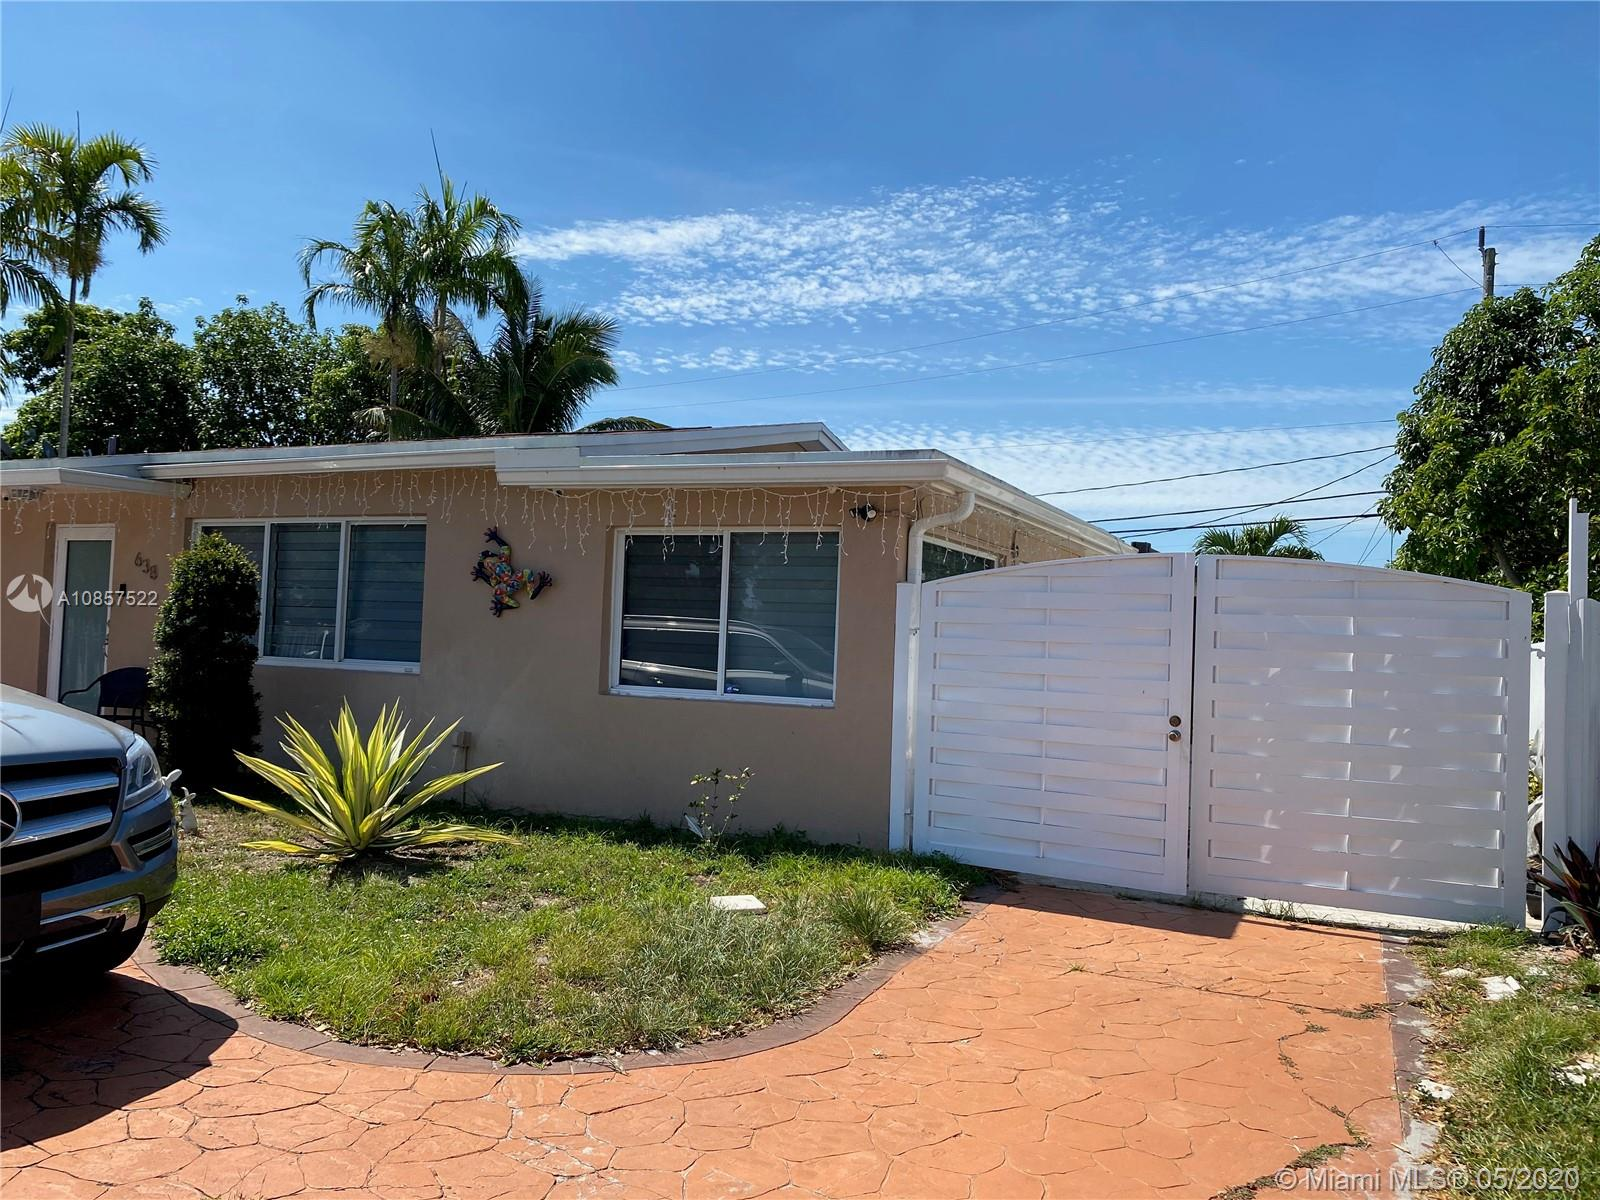 638 W 44th Pl, Hialeah, FL 33012